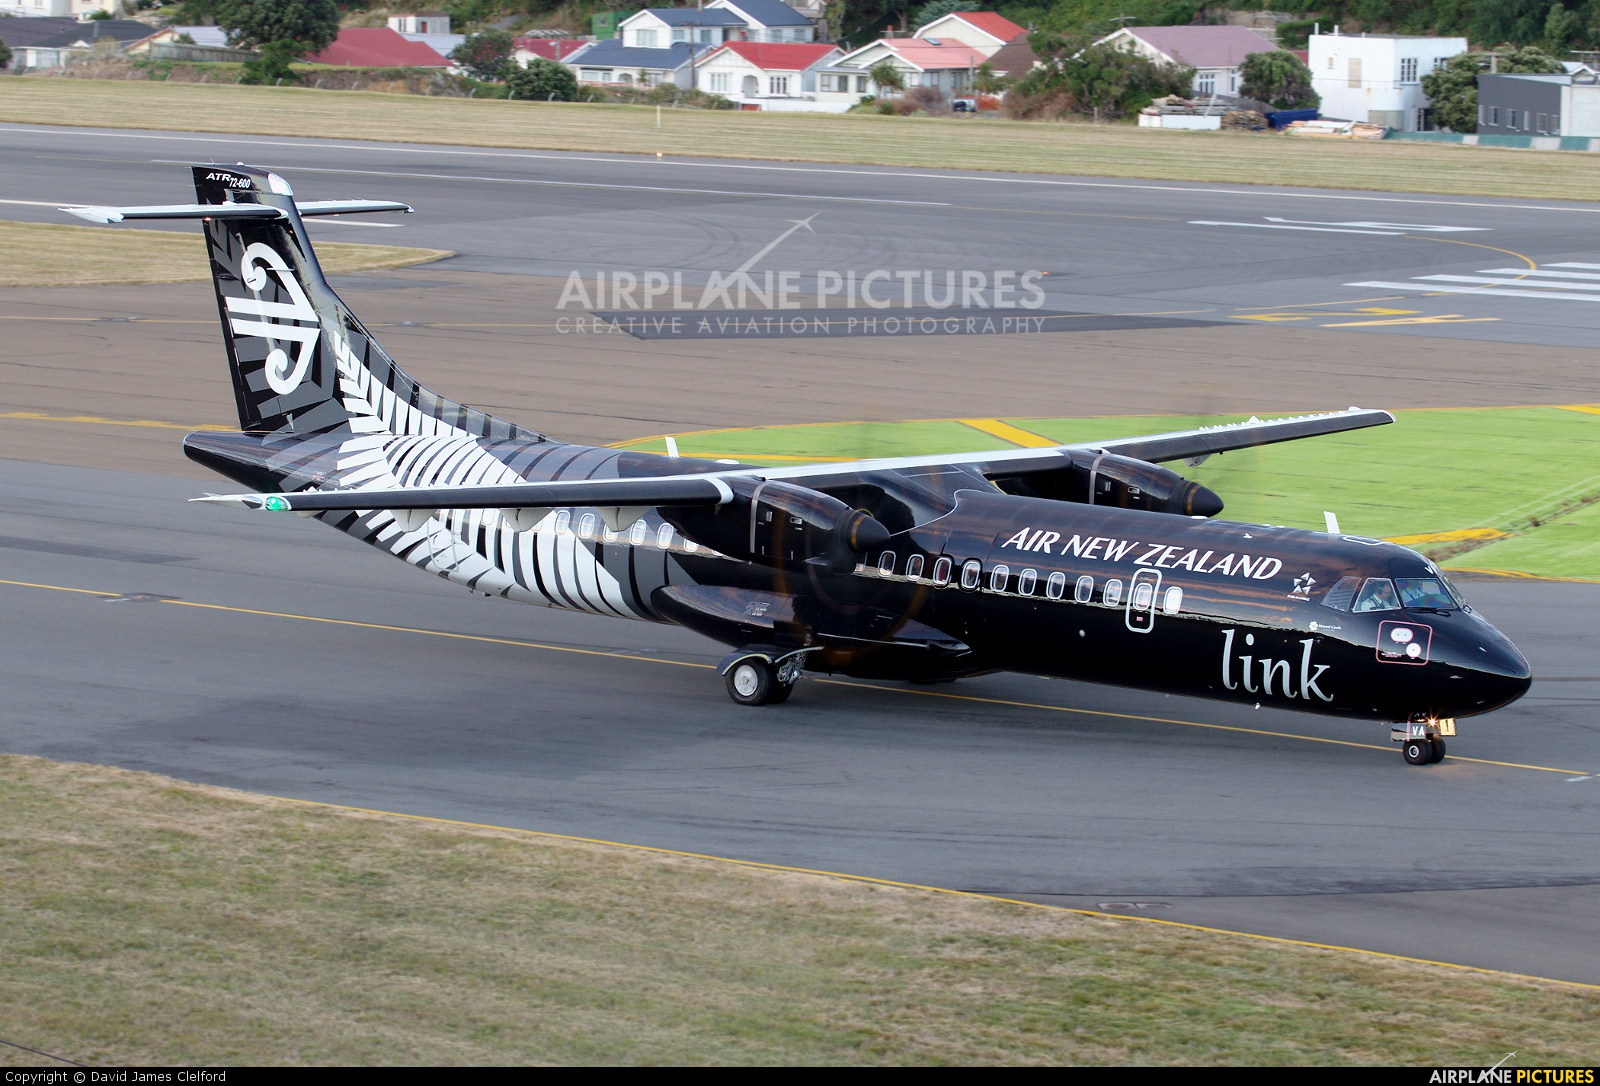 Air New Zealand Link - Mount Cook Airline ZK-MVA aircraft at Wellington Intl